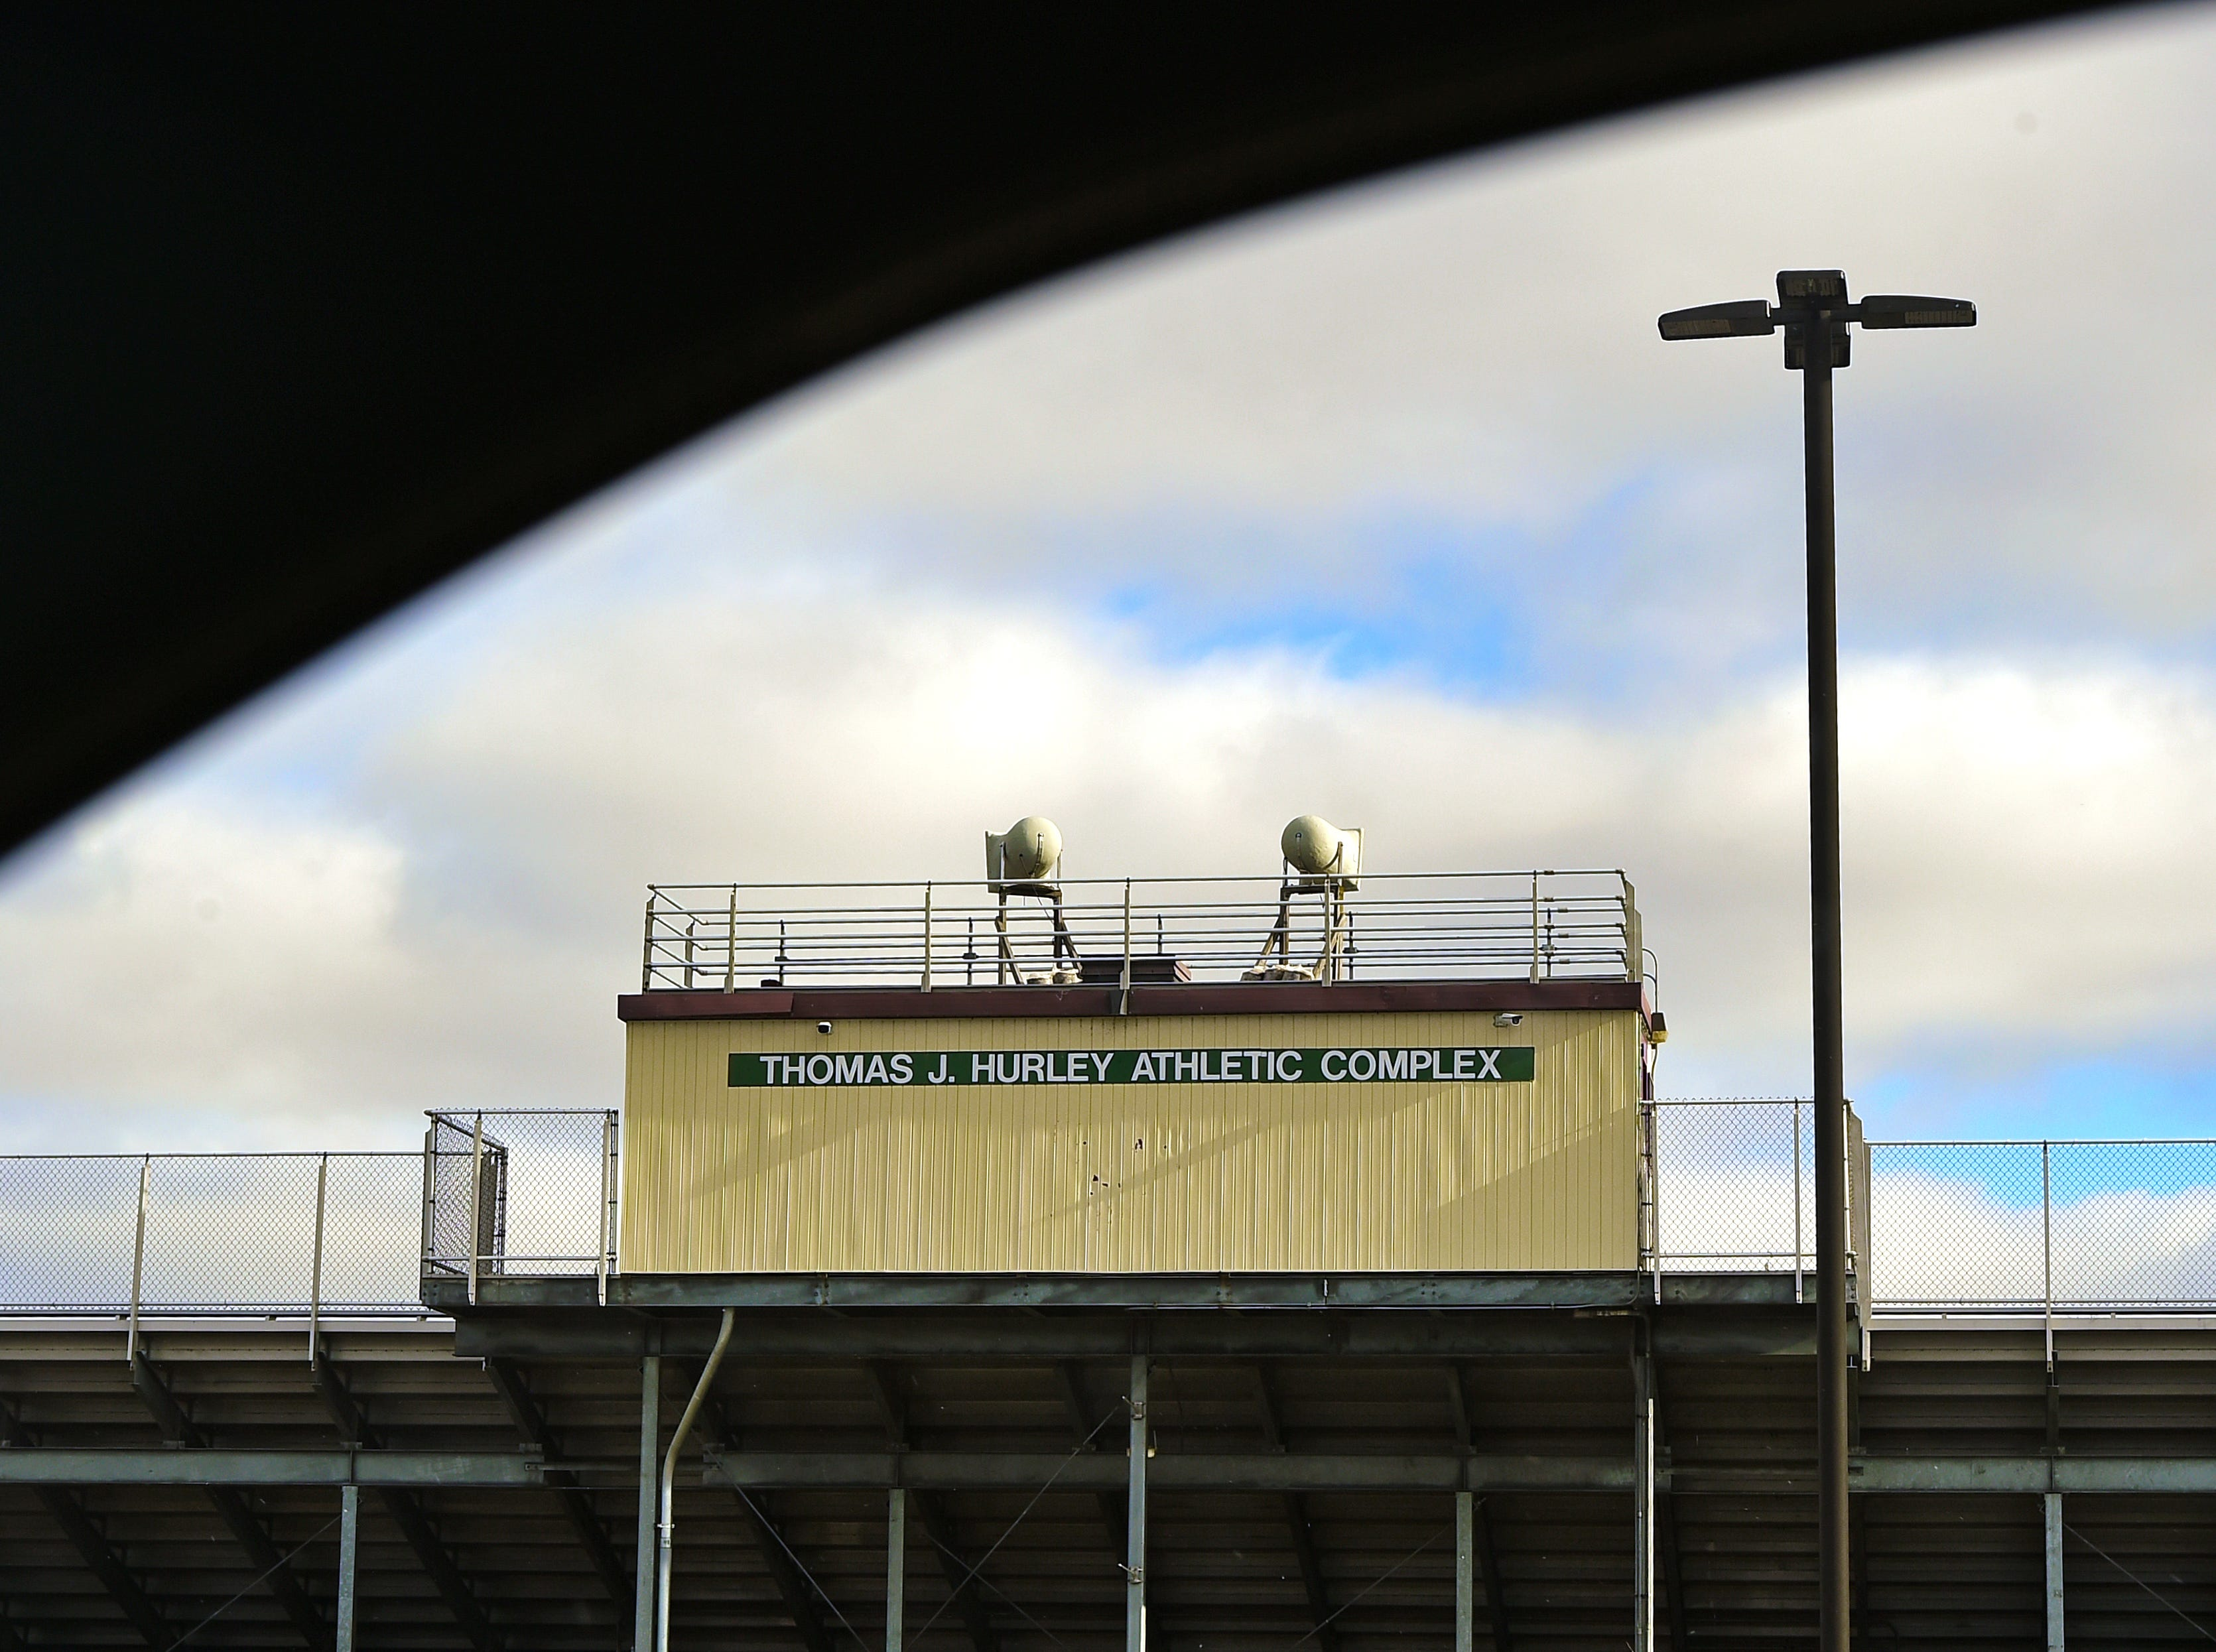 The Thomas J. Hurley Athletic Complex at Elmira High School. Testing revealed that the athletic field has high levels of polychlorinated biphenyls, or PCBs, which are known carcinogens. December 18, 2018.